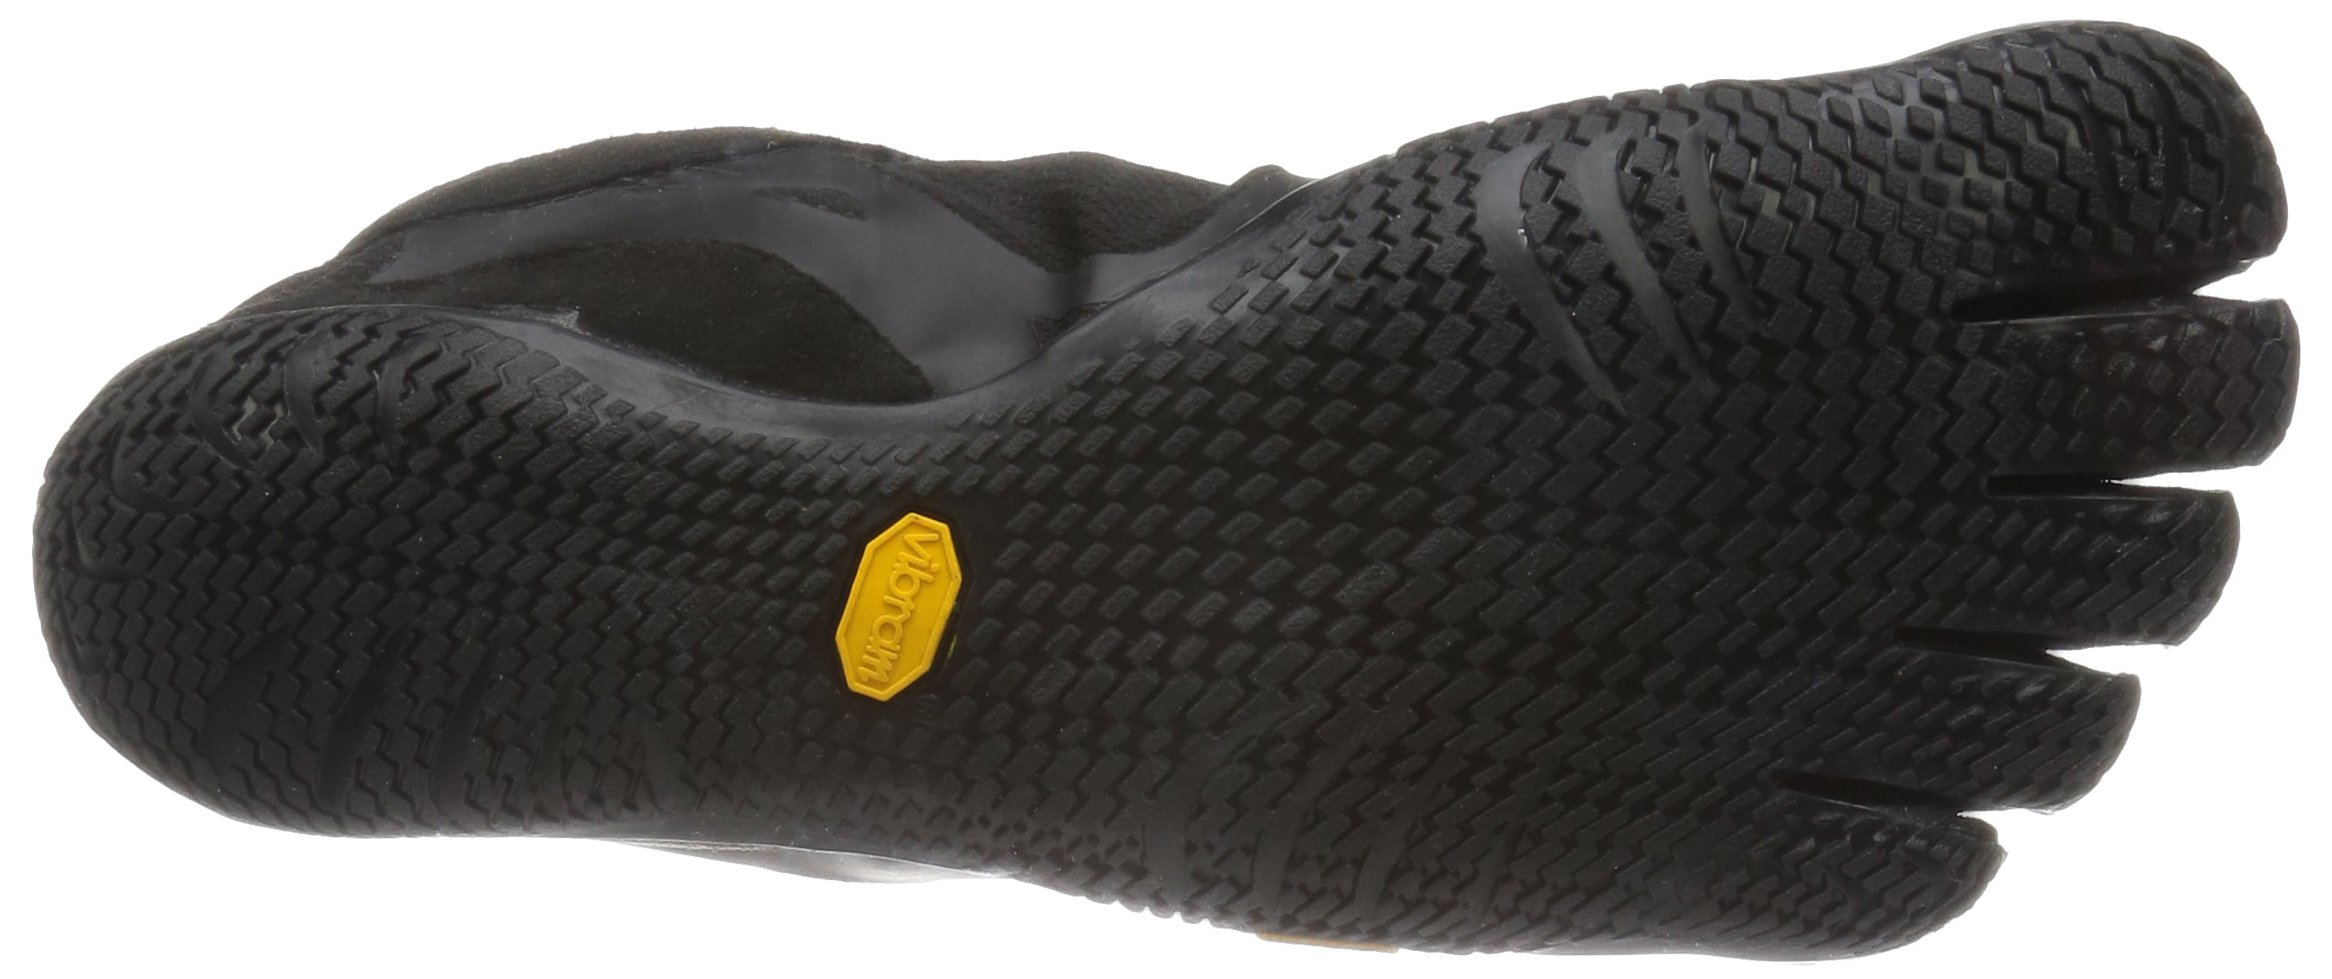 Vibram Men's KSO EVO Cross Training Shoe,Black,41 EU/8.5-9.0 M US by Vibram (Image #3)